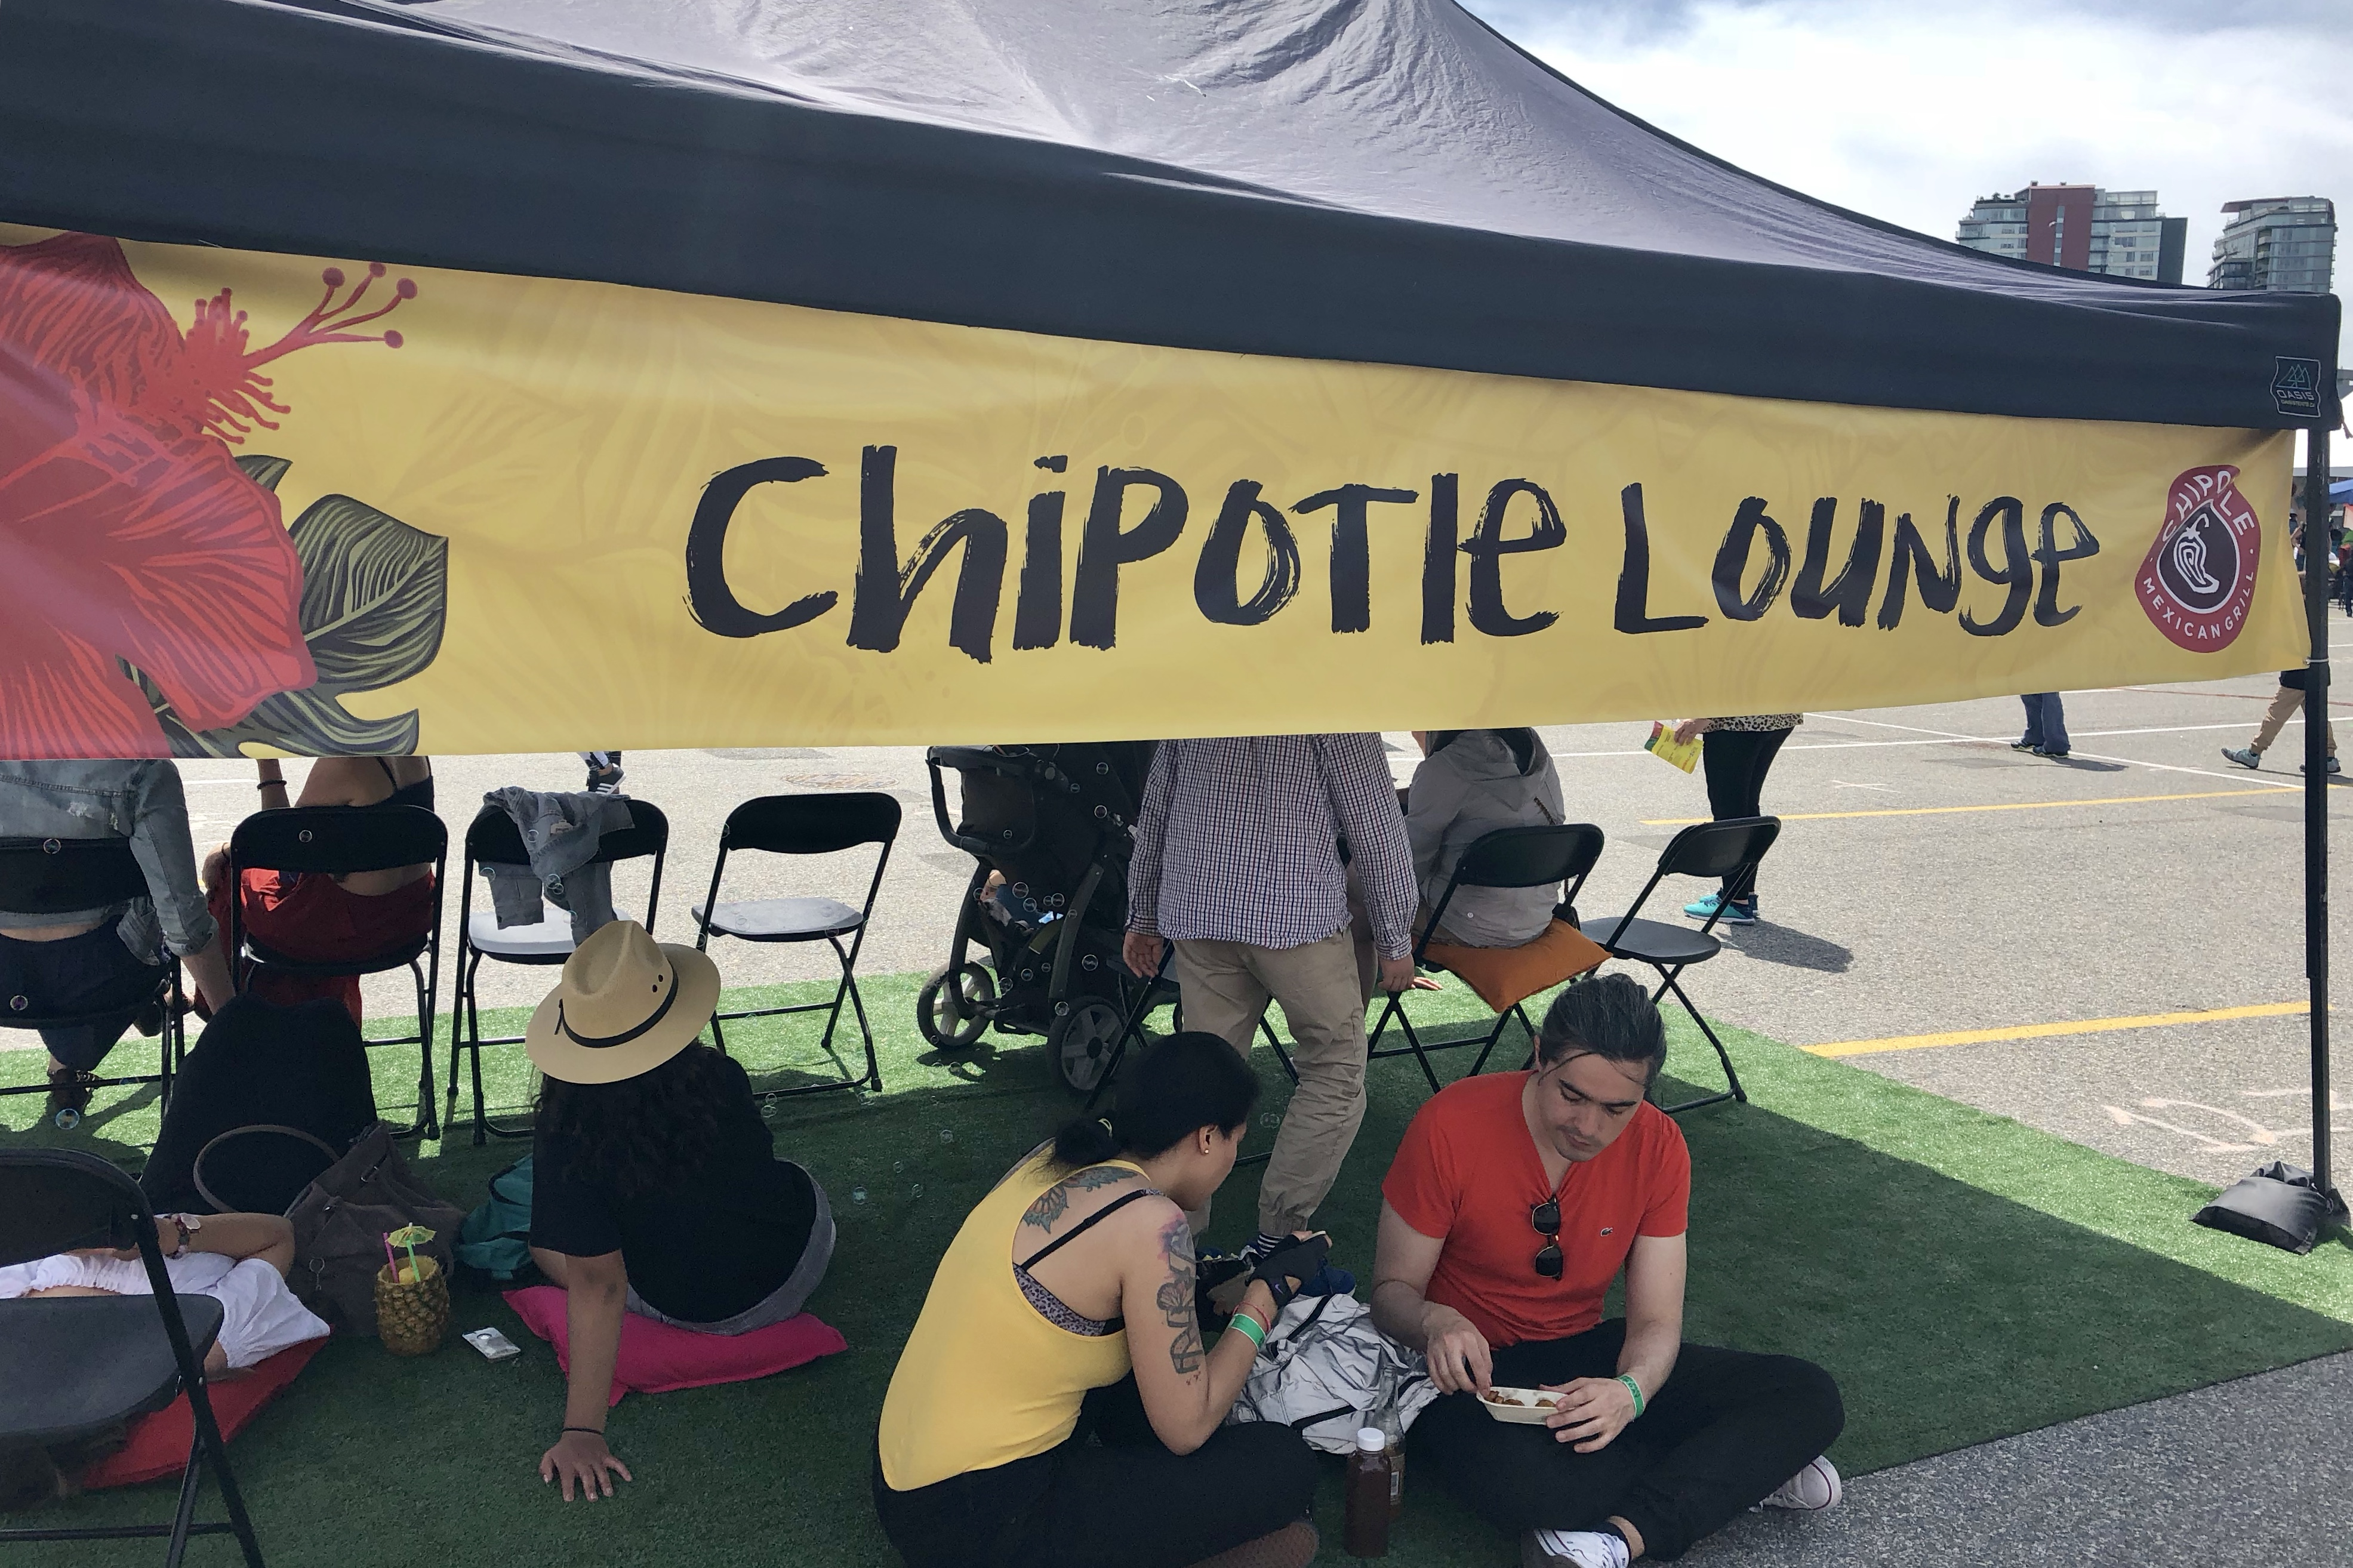 Chipotle Lounge